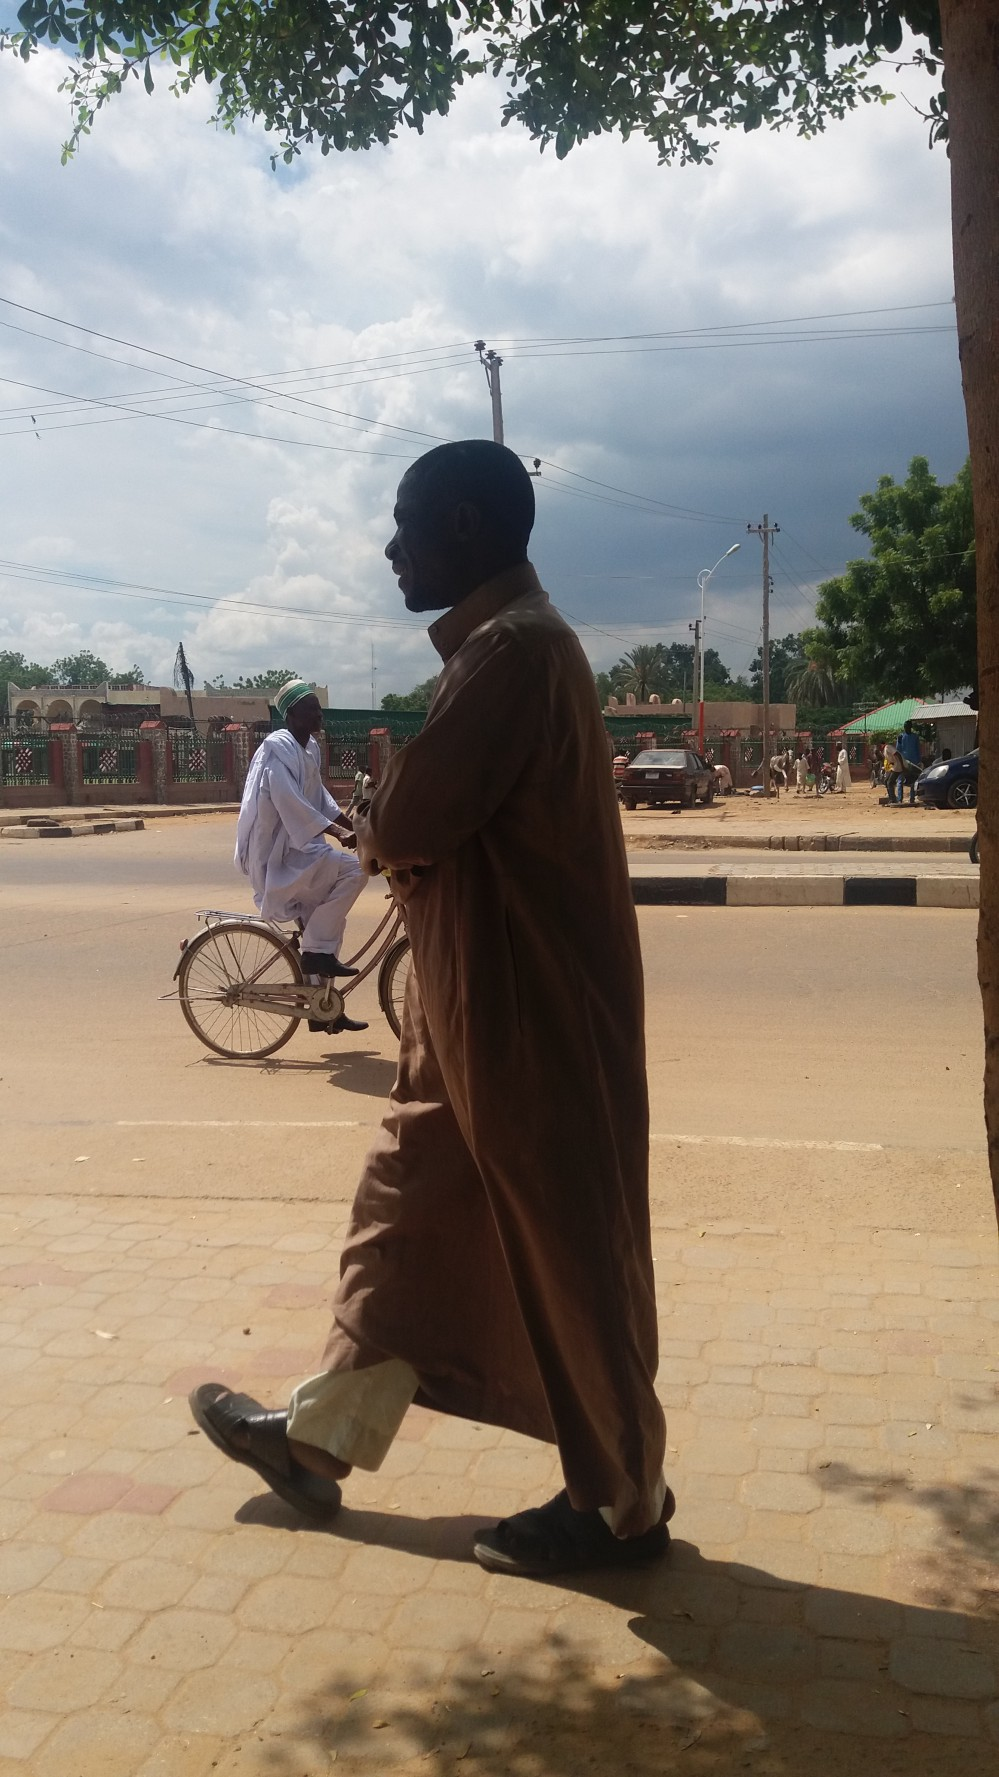 Man walking, dressed in Jalabia and another on Bike dressed in Agbada/Babaringa